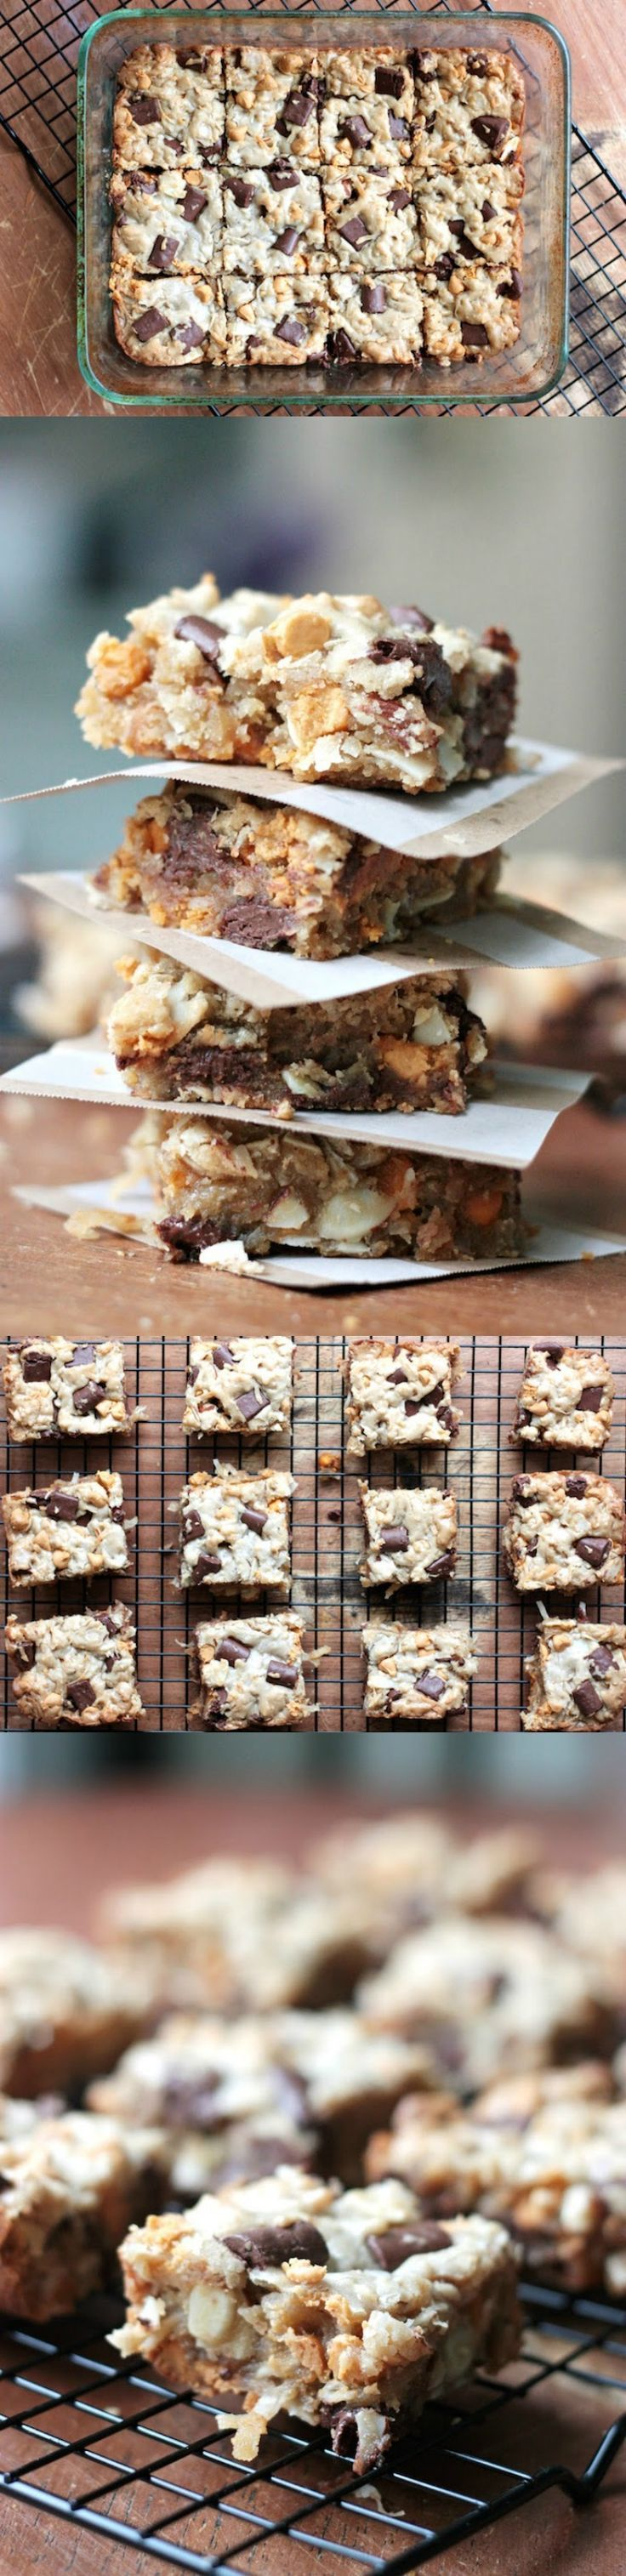 If you need brownies but are out of cocoa, take the edge off with this delicious and easy blondie recipe. Full of chocolate chips and peanut butter chips. Get your sweets fix with this amazing classic treat!